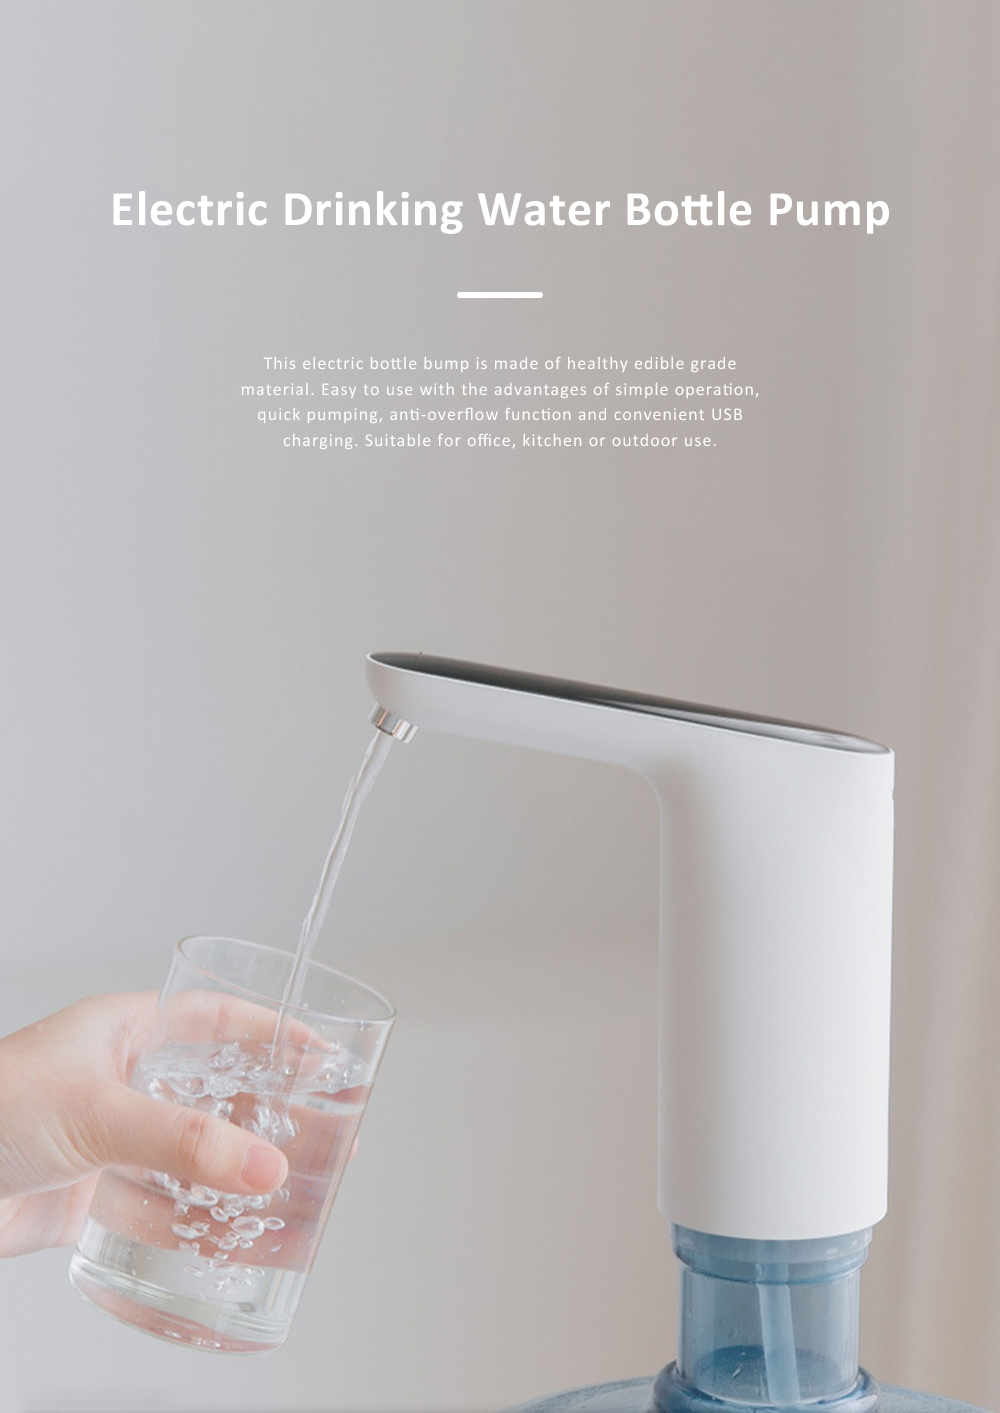 Electric Bottle Pump USB Charging Water Bottle Dispenser with Pollution-free Design for Home Office or Outdoor 0